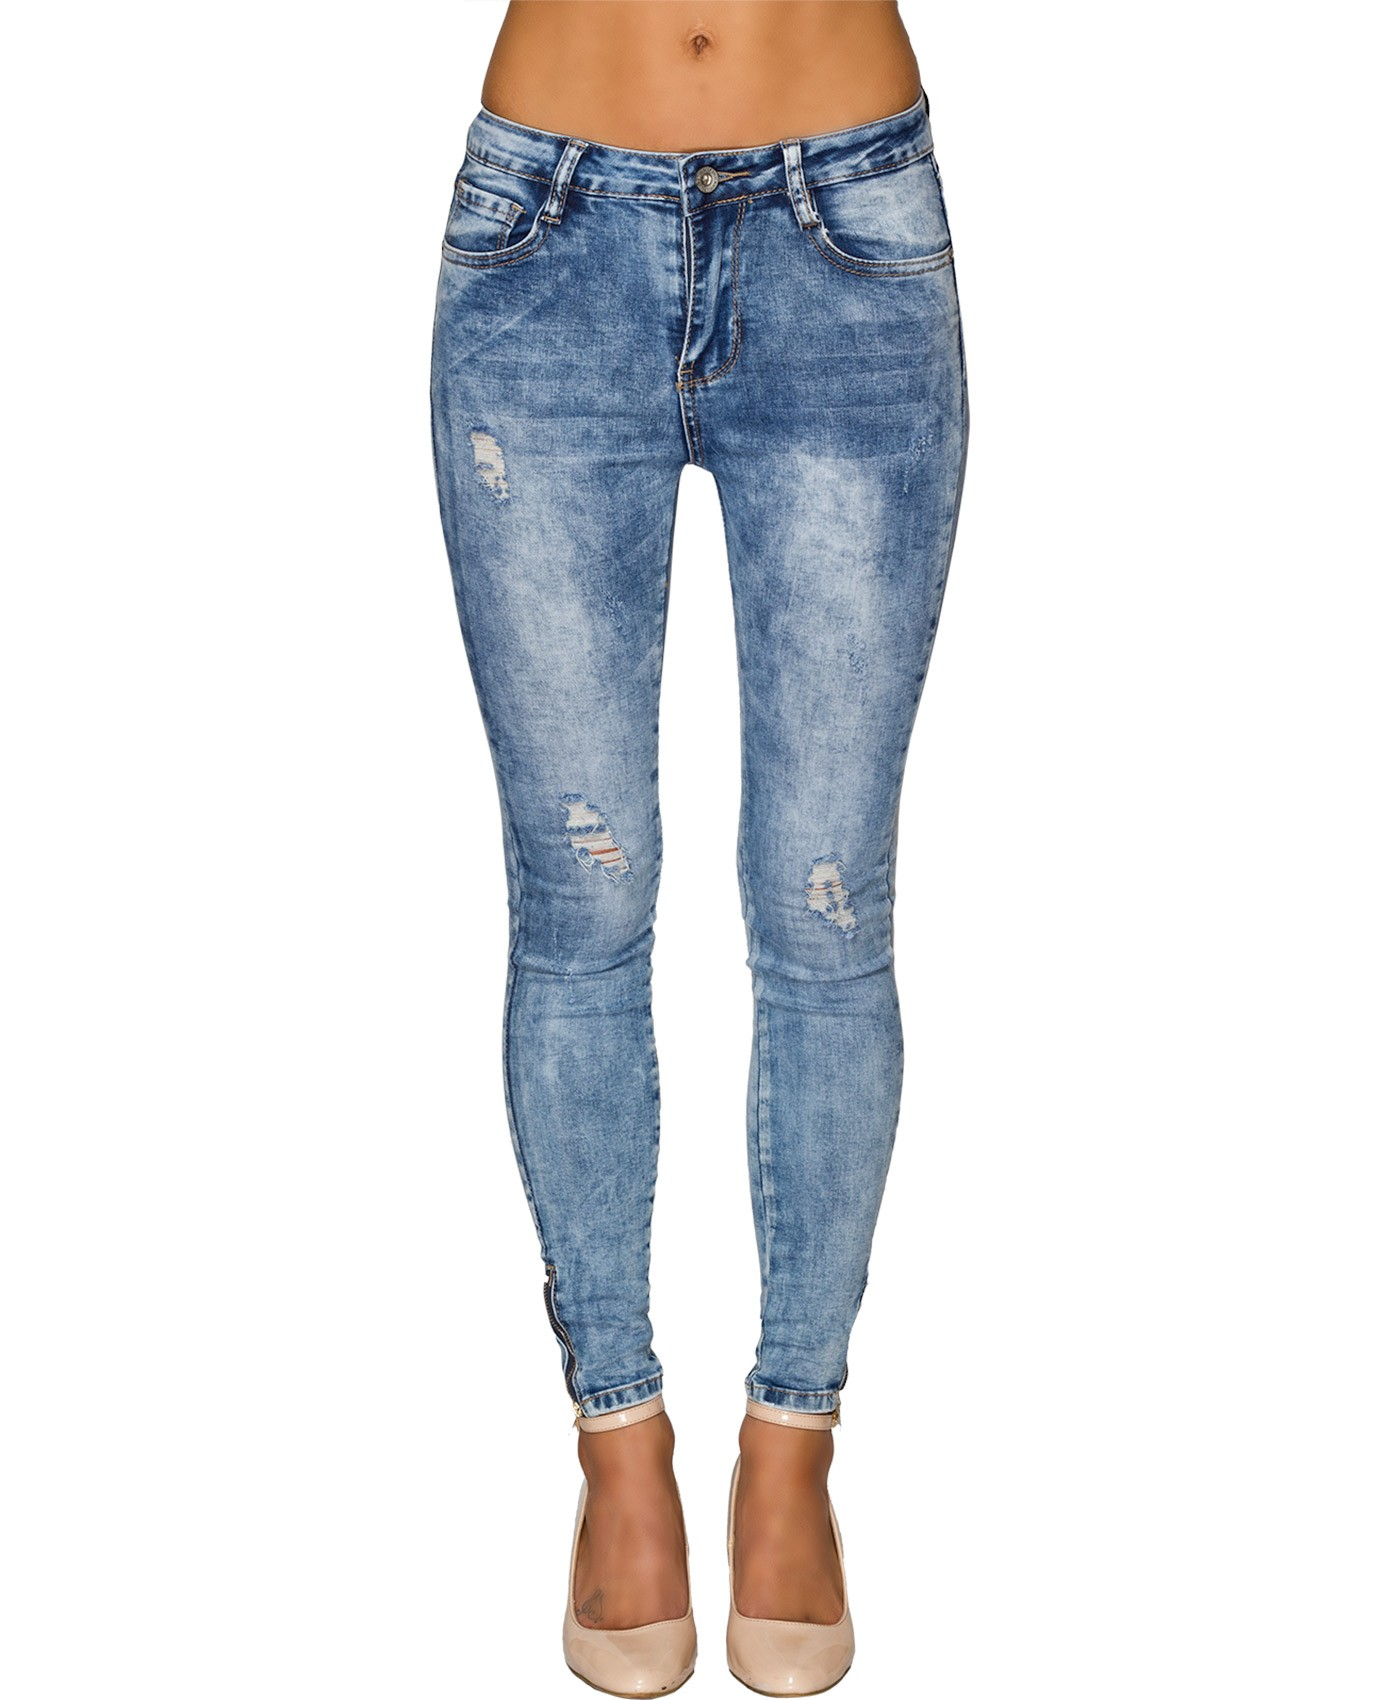 Ankle Zip Distressed Jeans